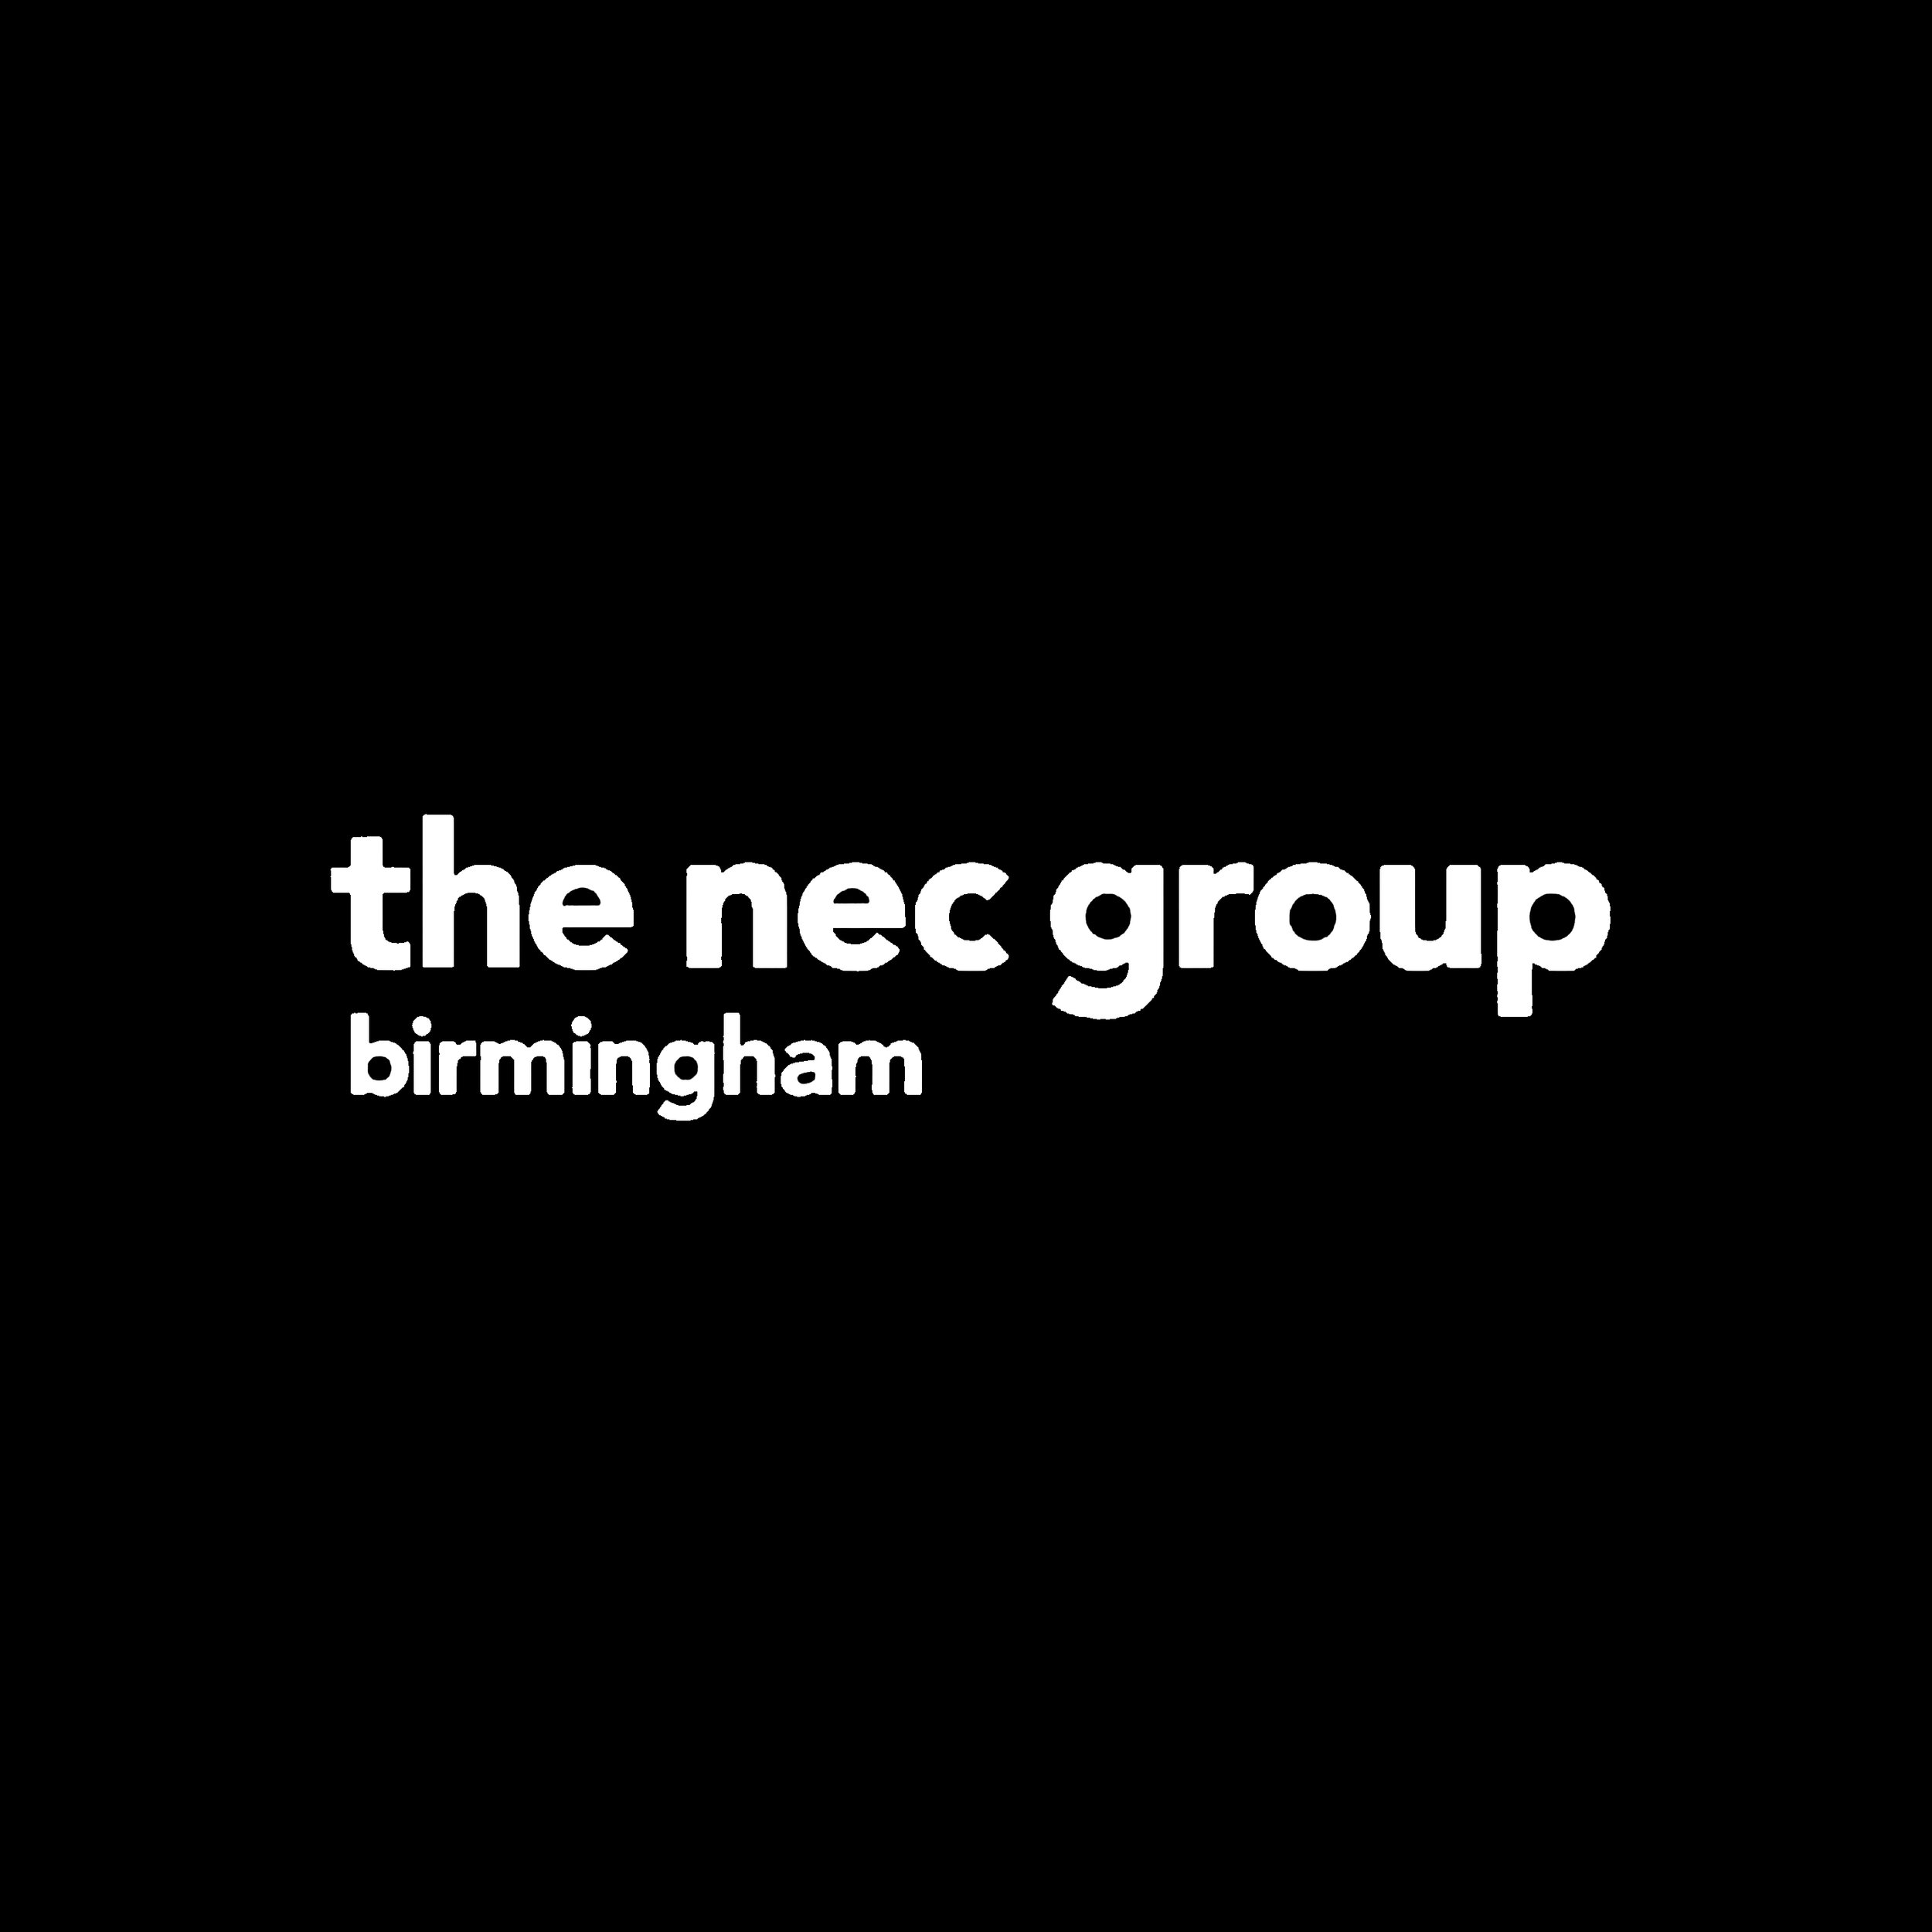 The Nec Group Birmingham.jpg